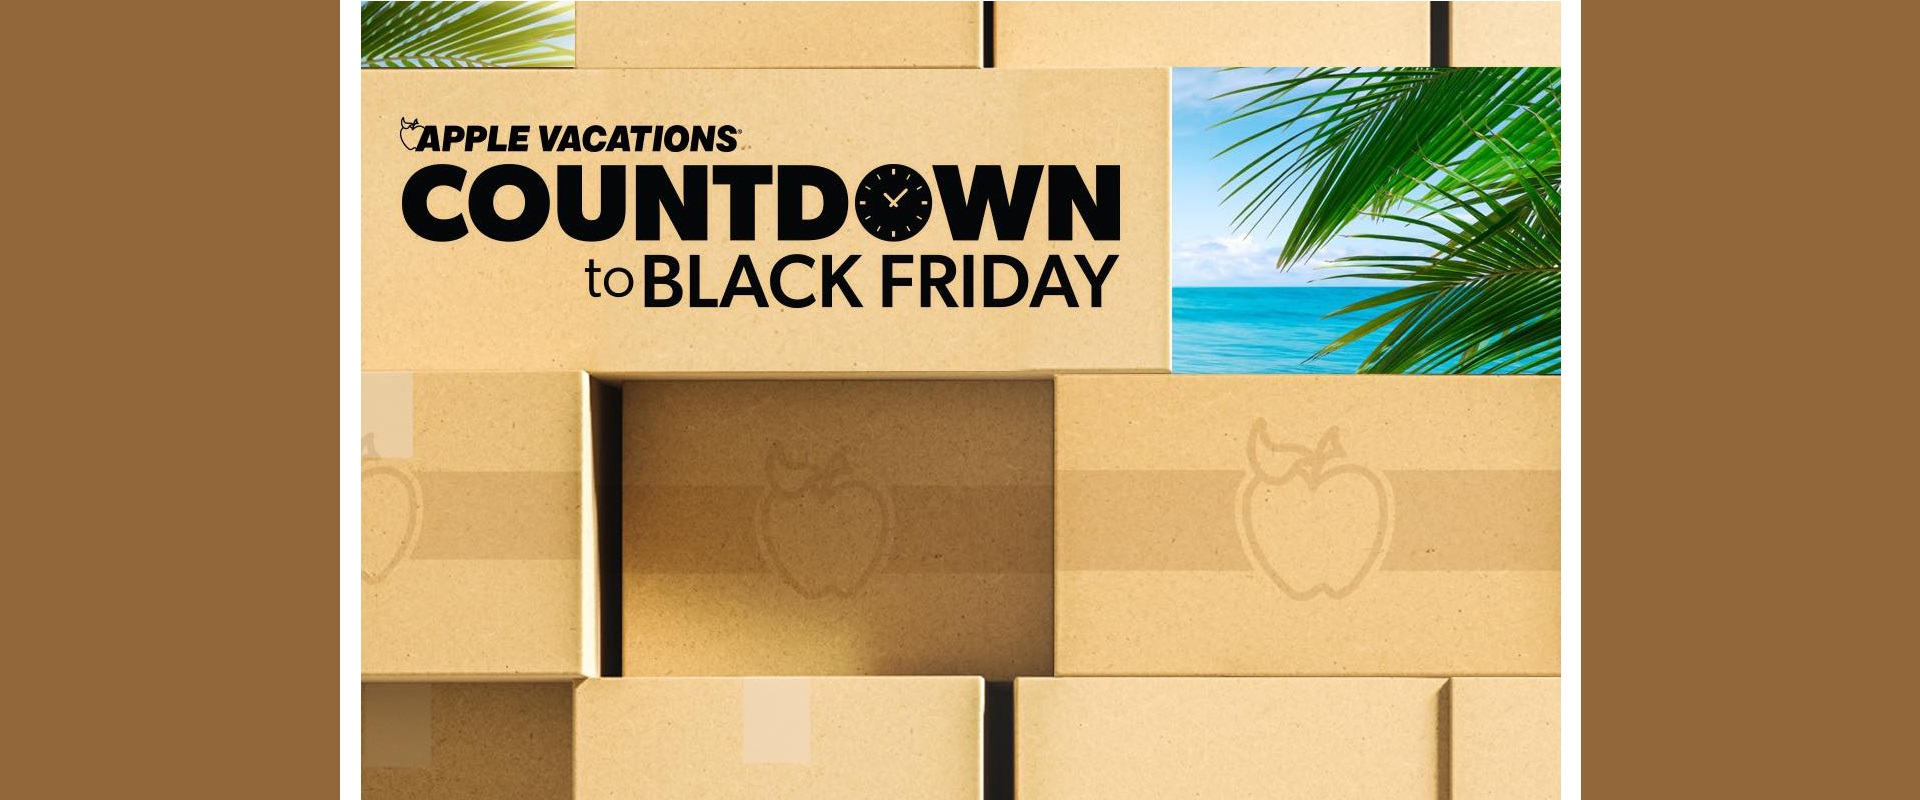 Countown-to-Black-Friday-Banner